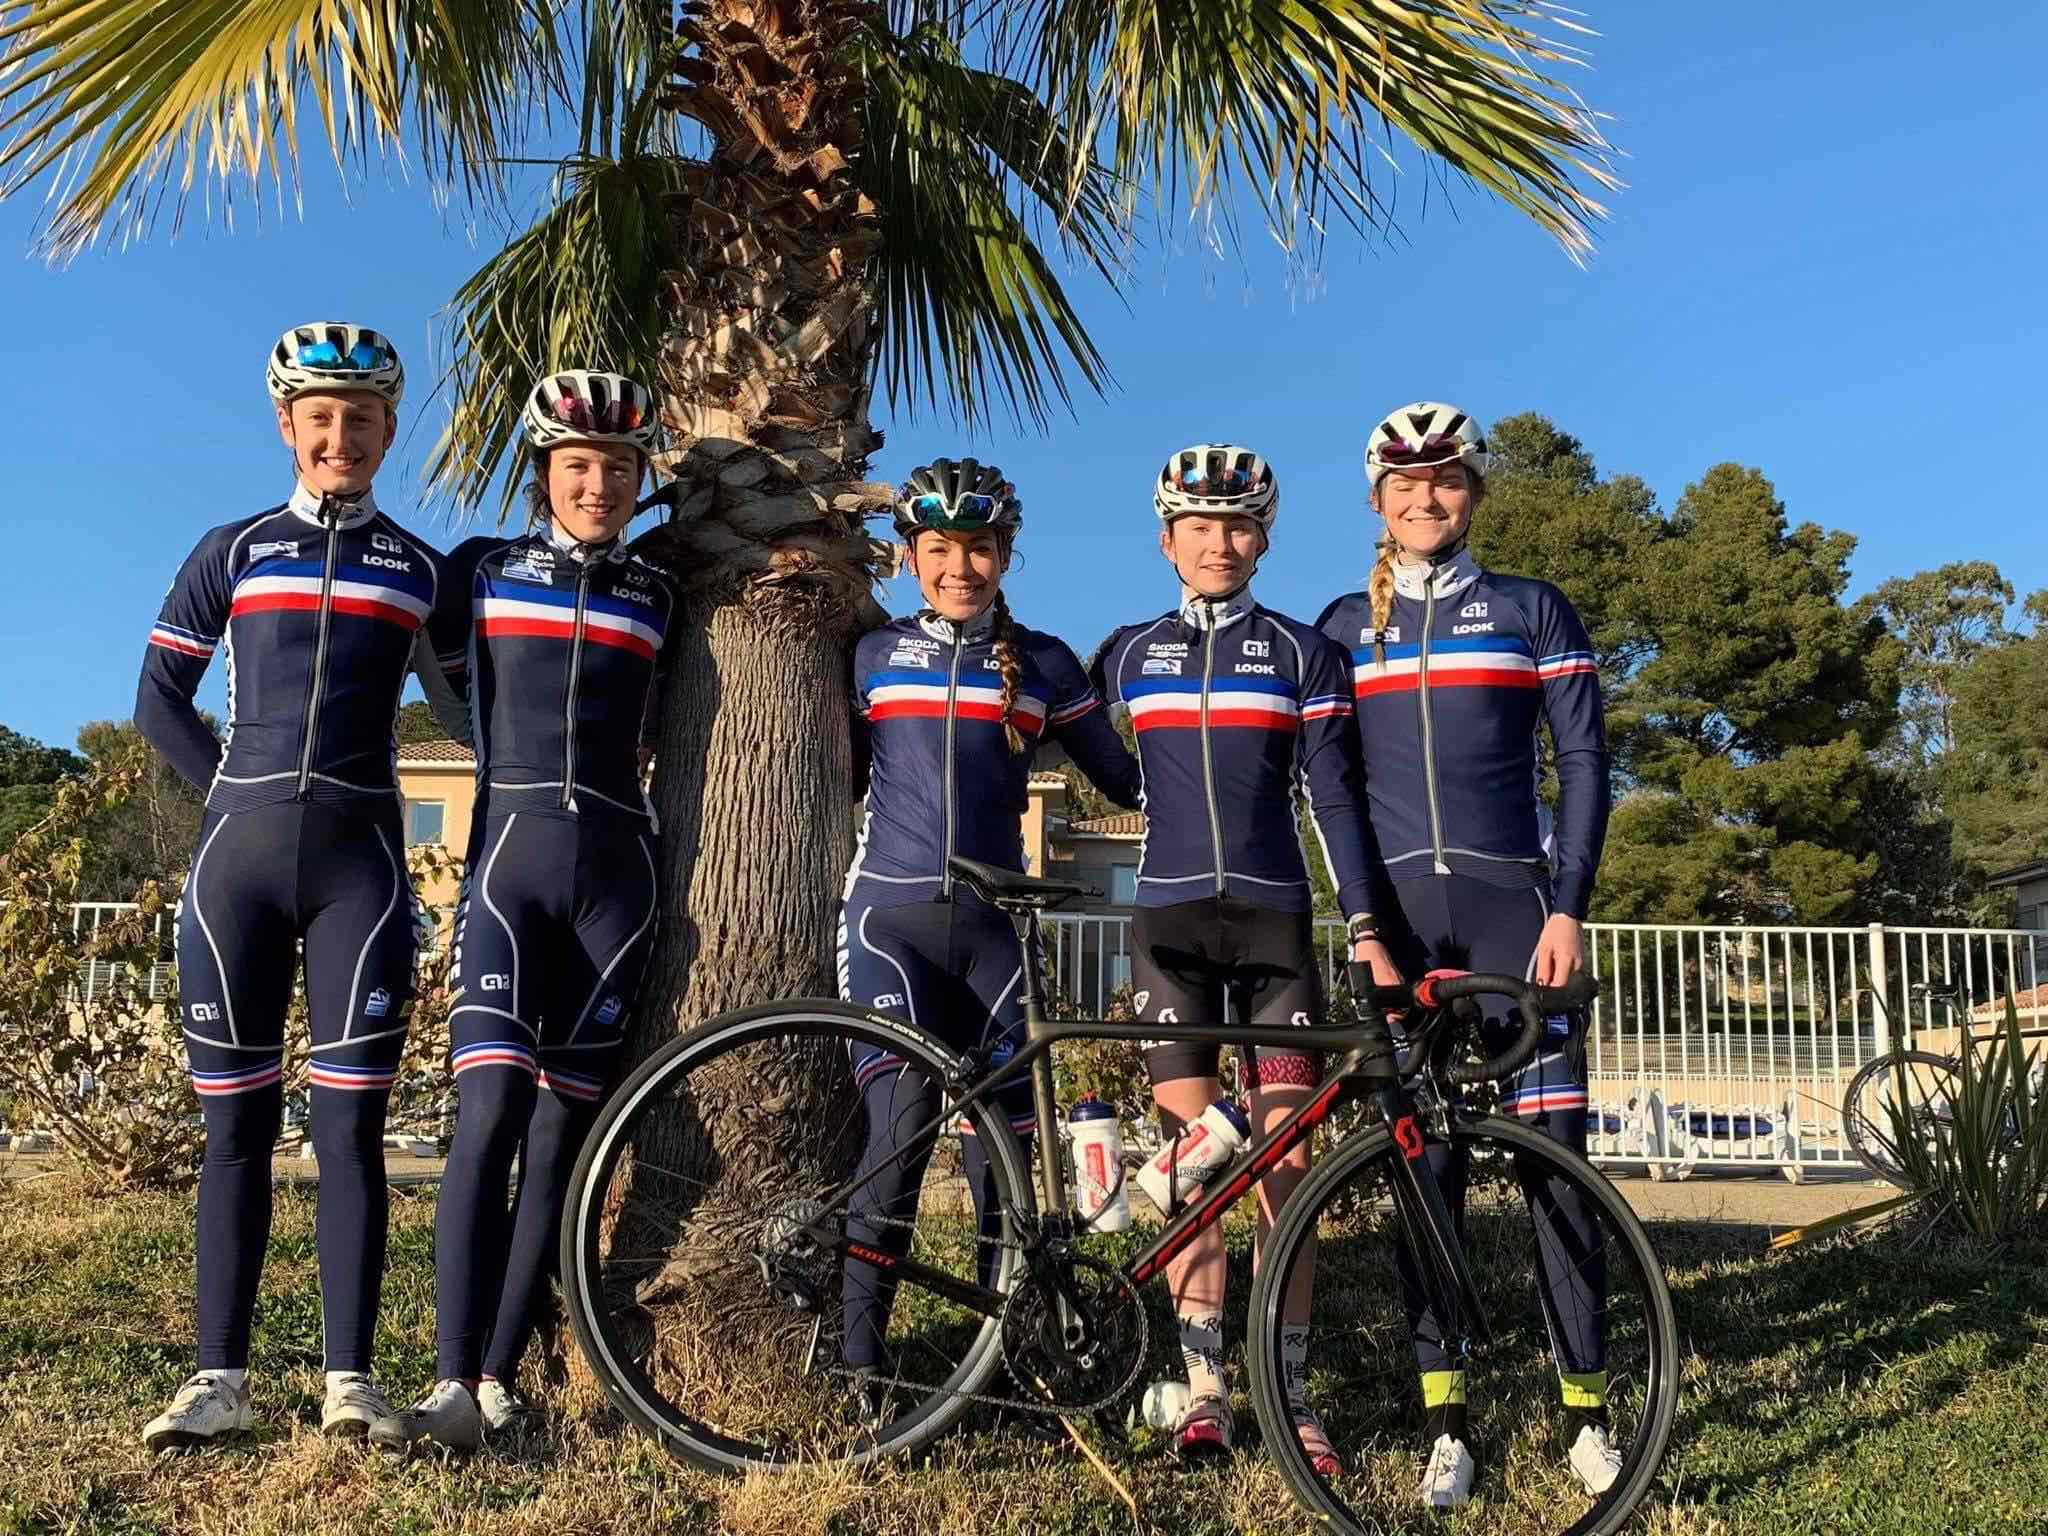 Equipe juniors fille france 2019